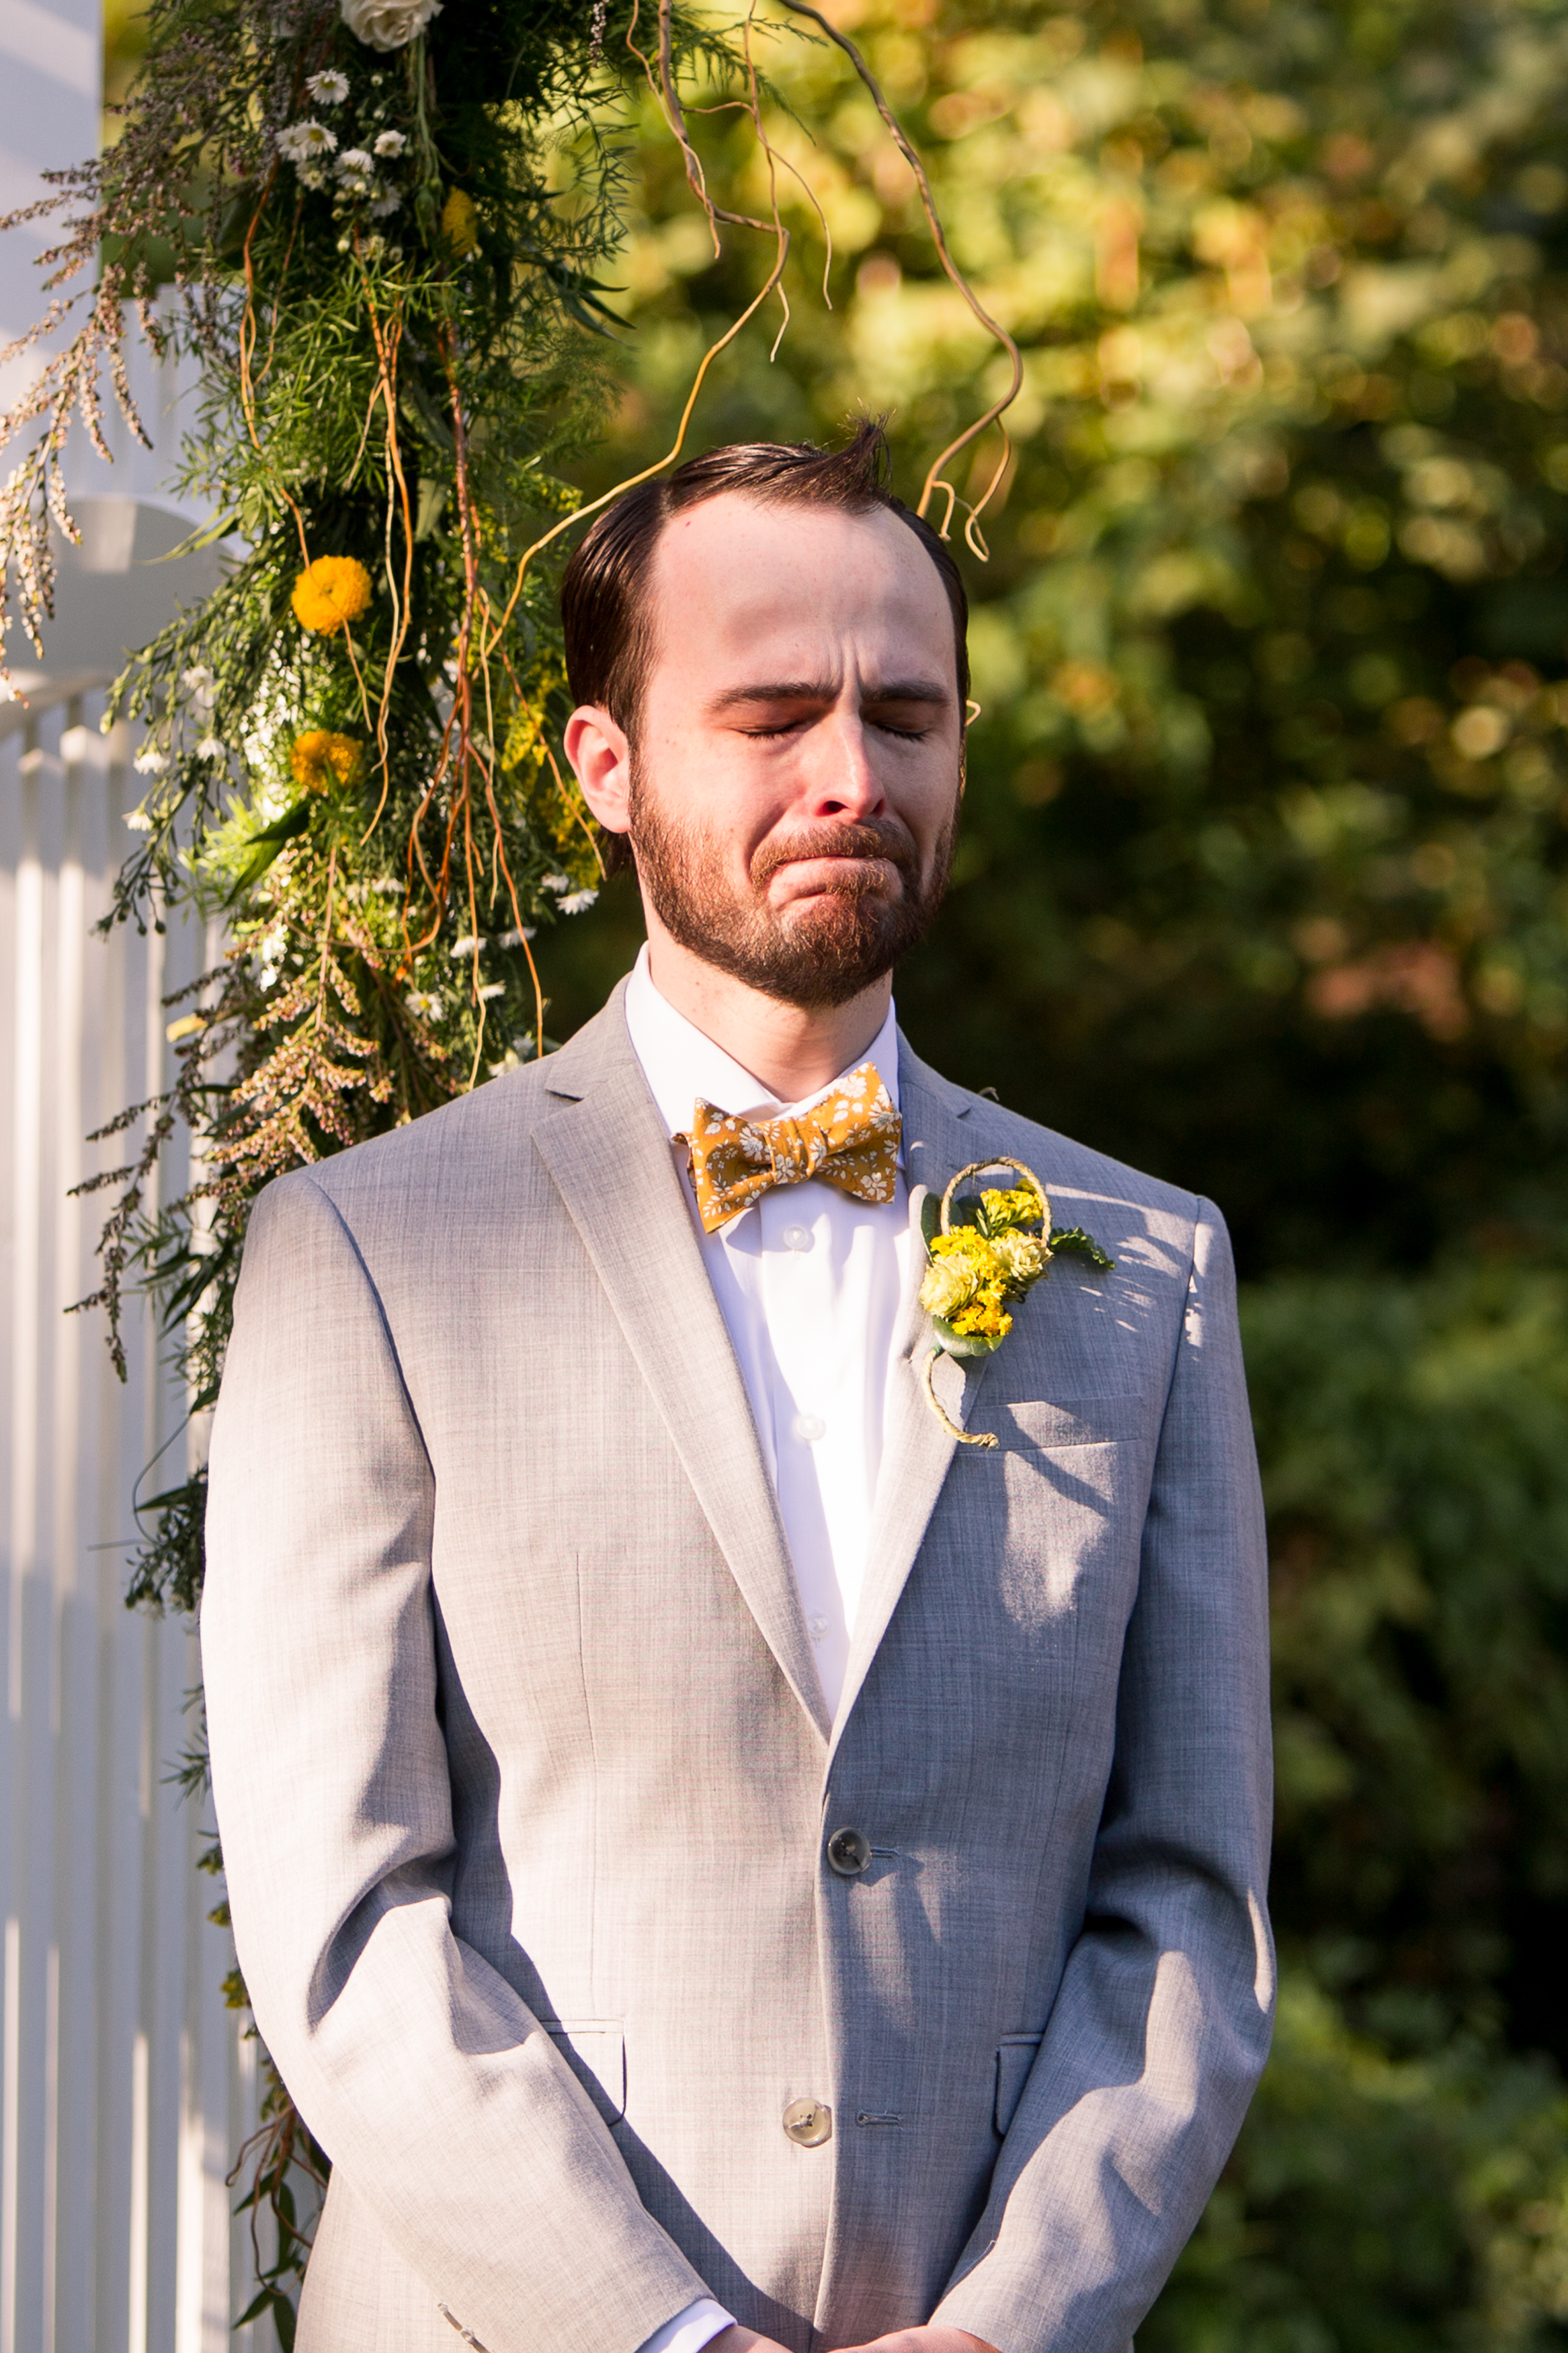 groom cries during wedding ceremony as bride comes down aisle at Minnetrista in Muncie Indiana